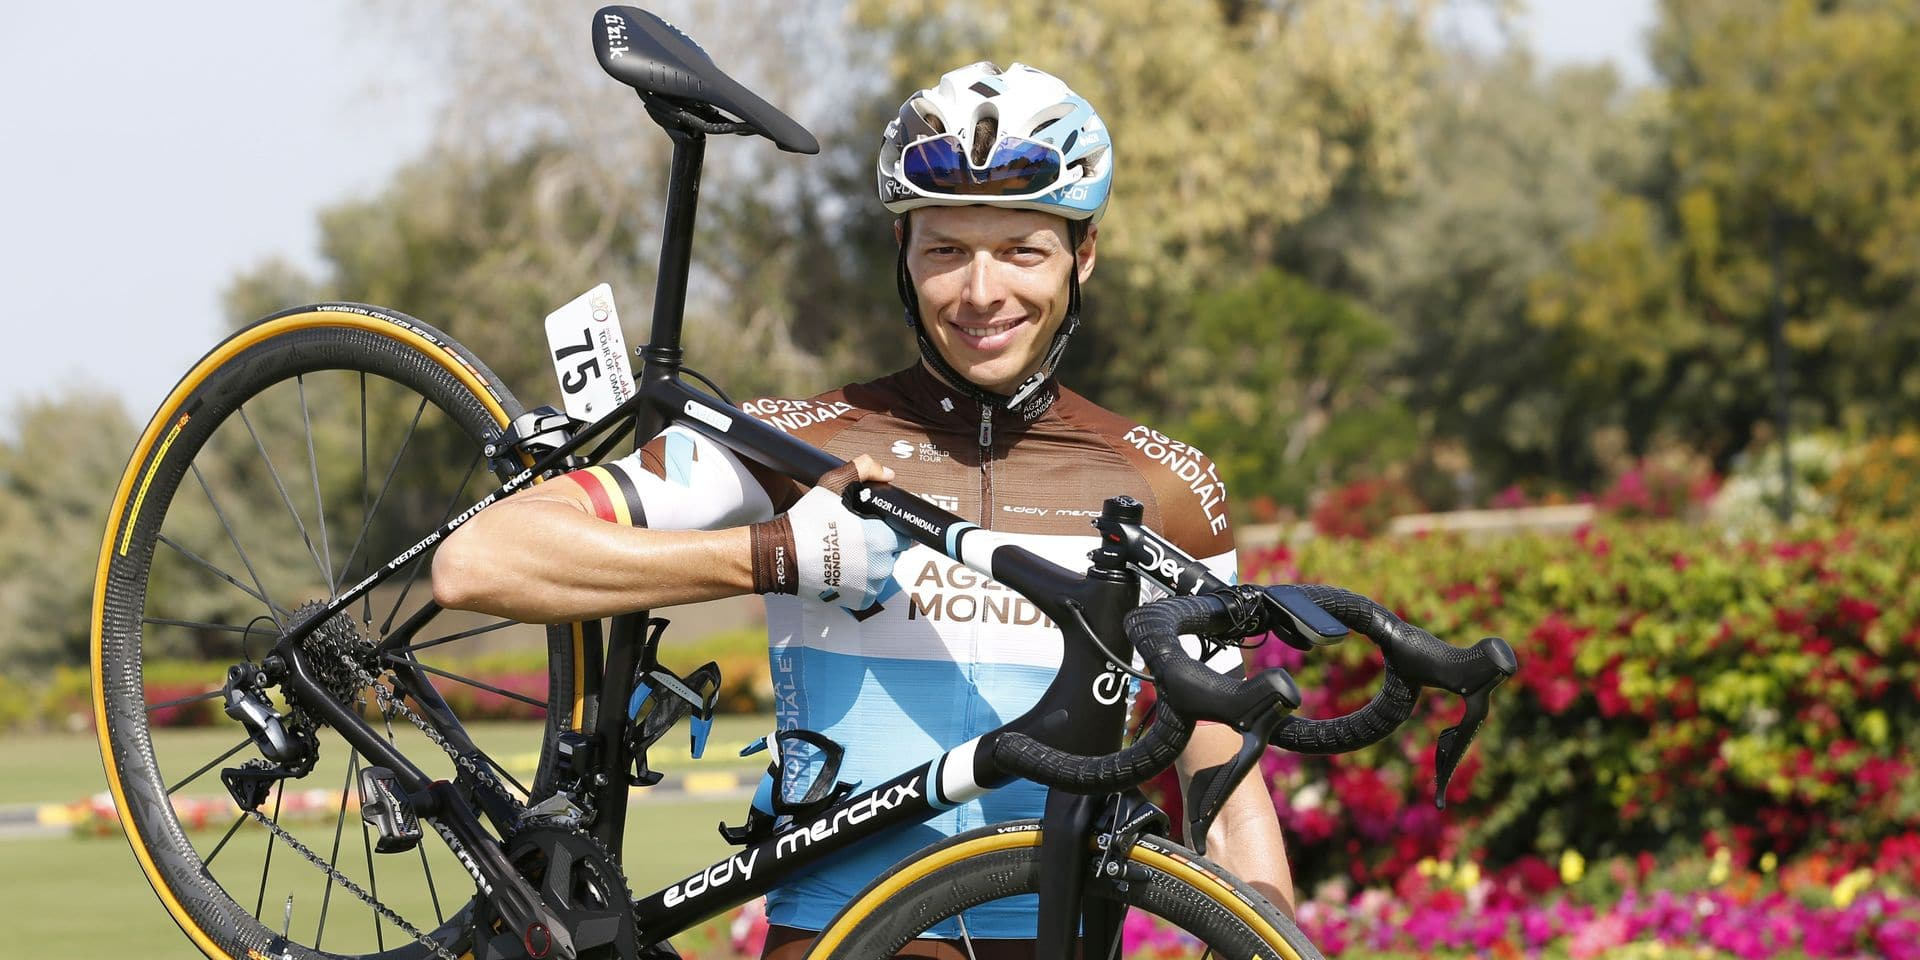 Belgian Oliver Naesen of AG2R La Mondiale pictured at the second stage of the Oman cycling Tour 2019, 156,5km from Royal Cavalry Oman to Al Bustan, Sunday 17 February 2019. This years Tour of Oman is taking place from 16 to 21 February. BELGA PHOTO YUZURU SUNADA FRANCE OUT